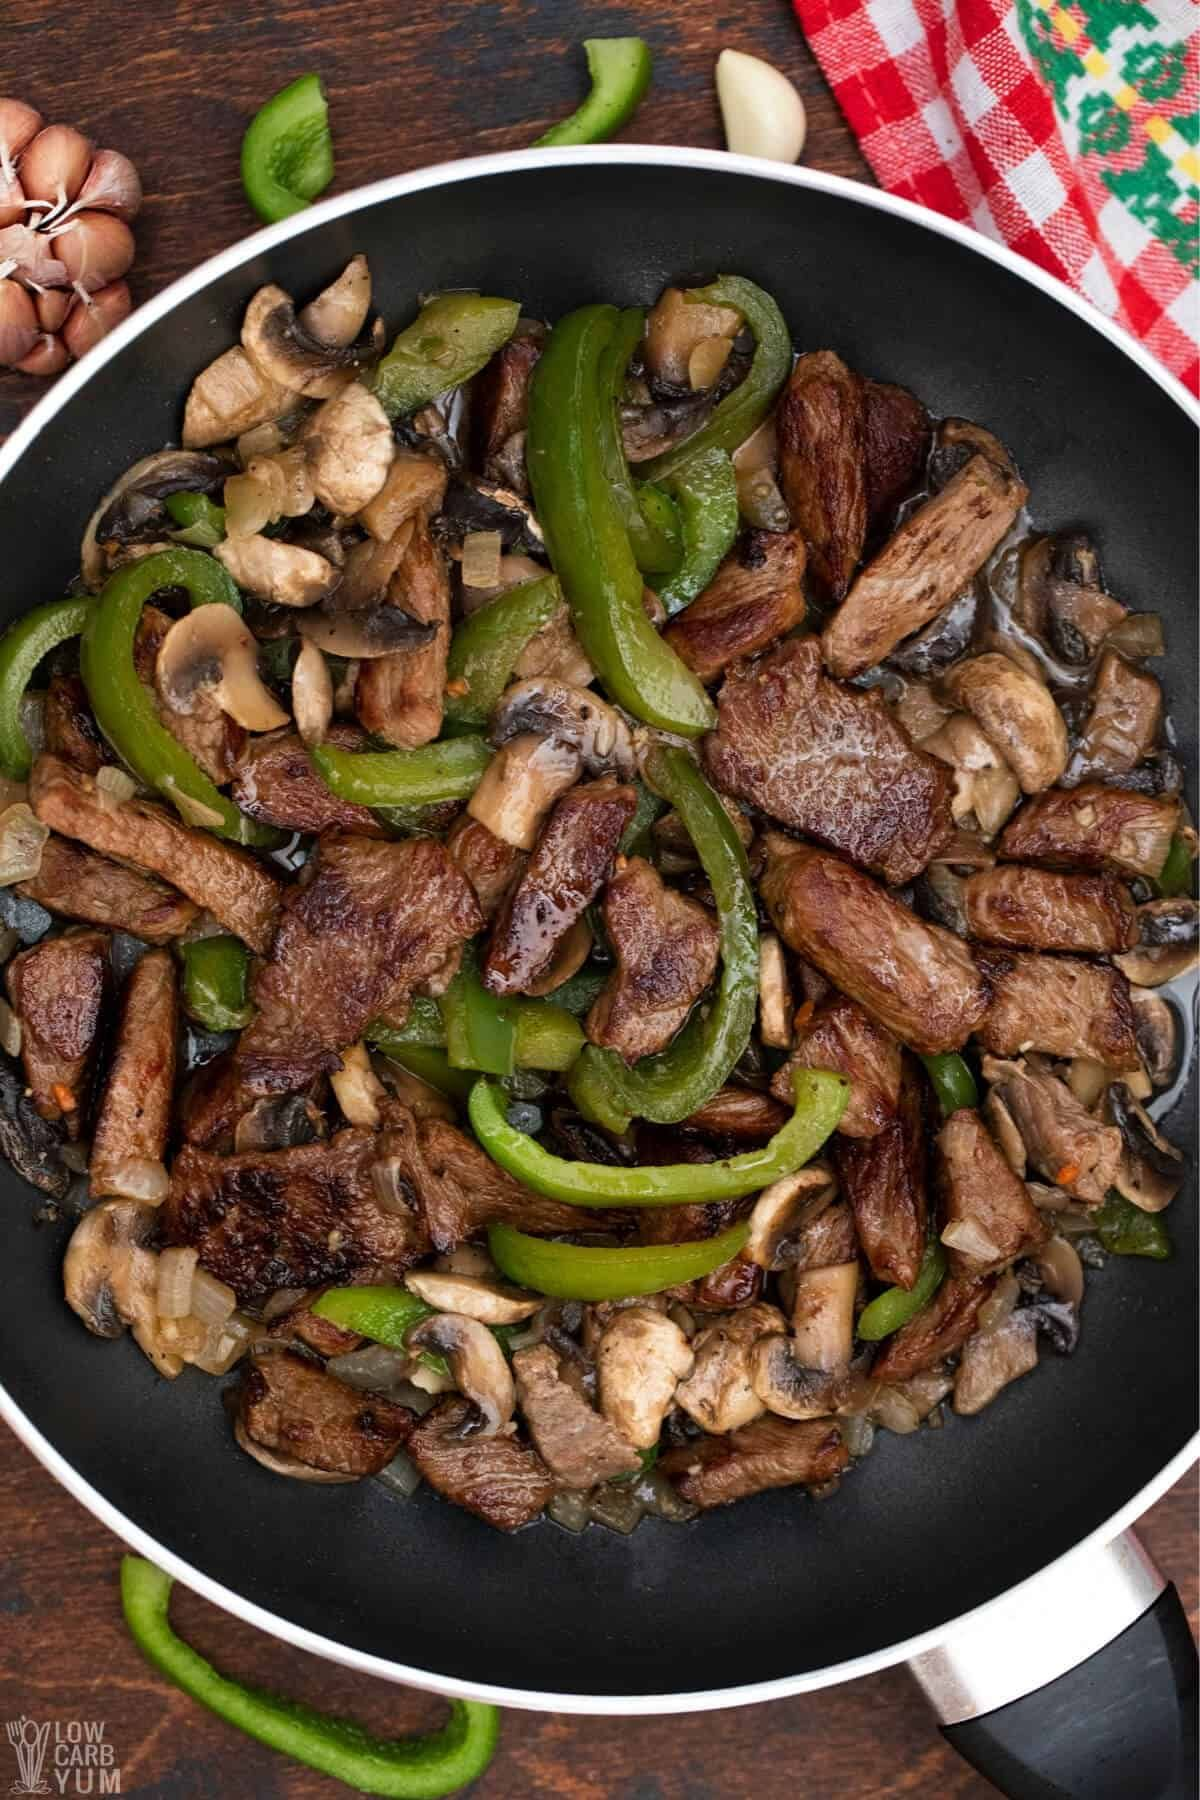 A top view of a skillet filled with steak slices, sliced mushrooms and sliced green peppers